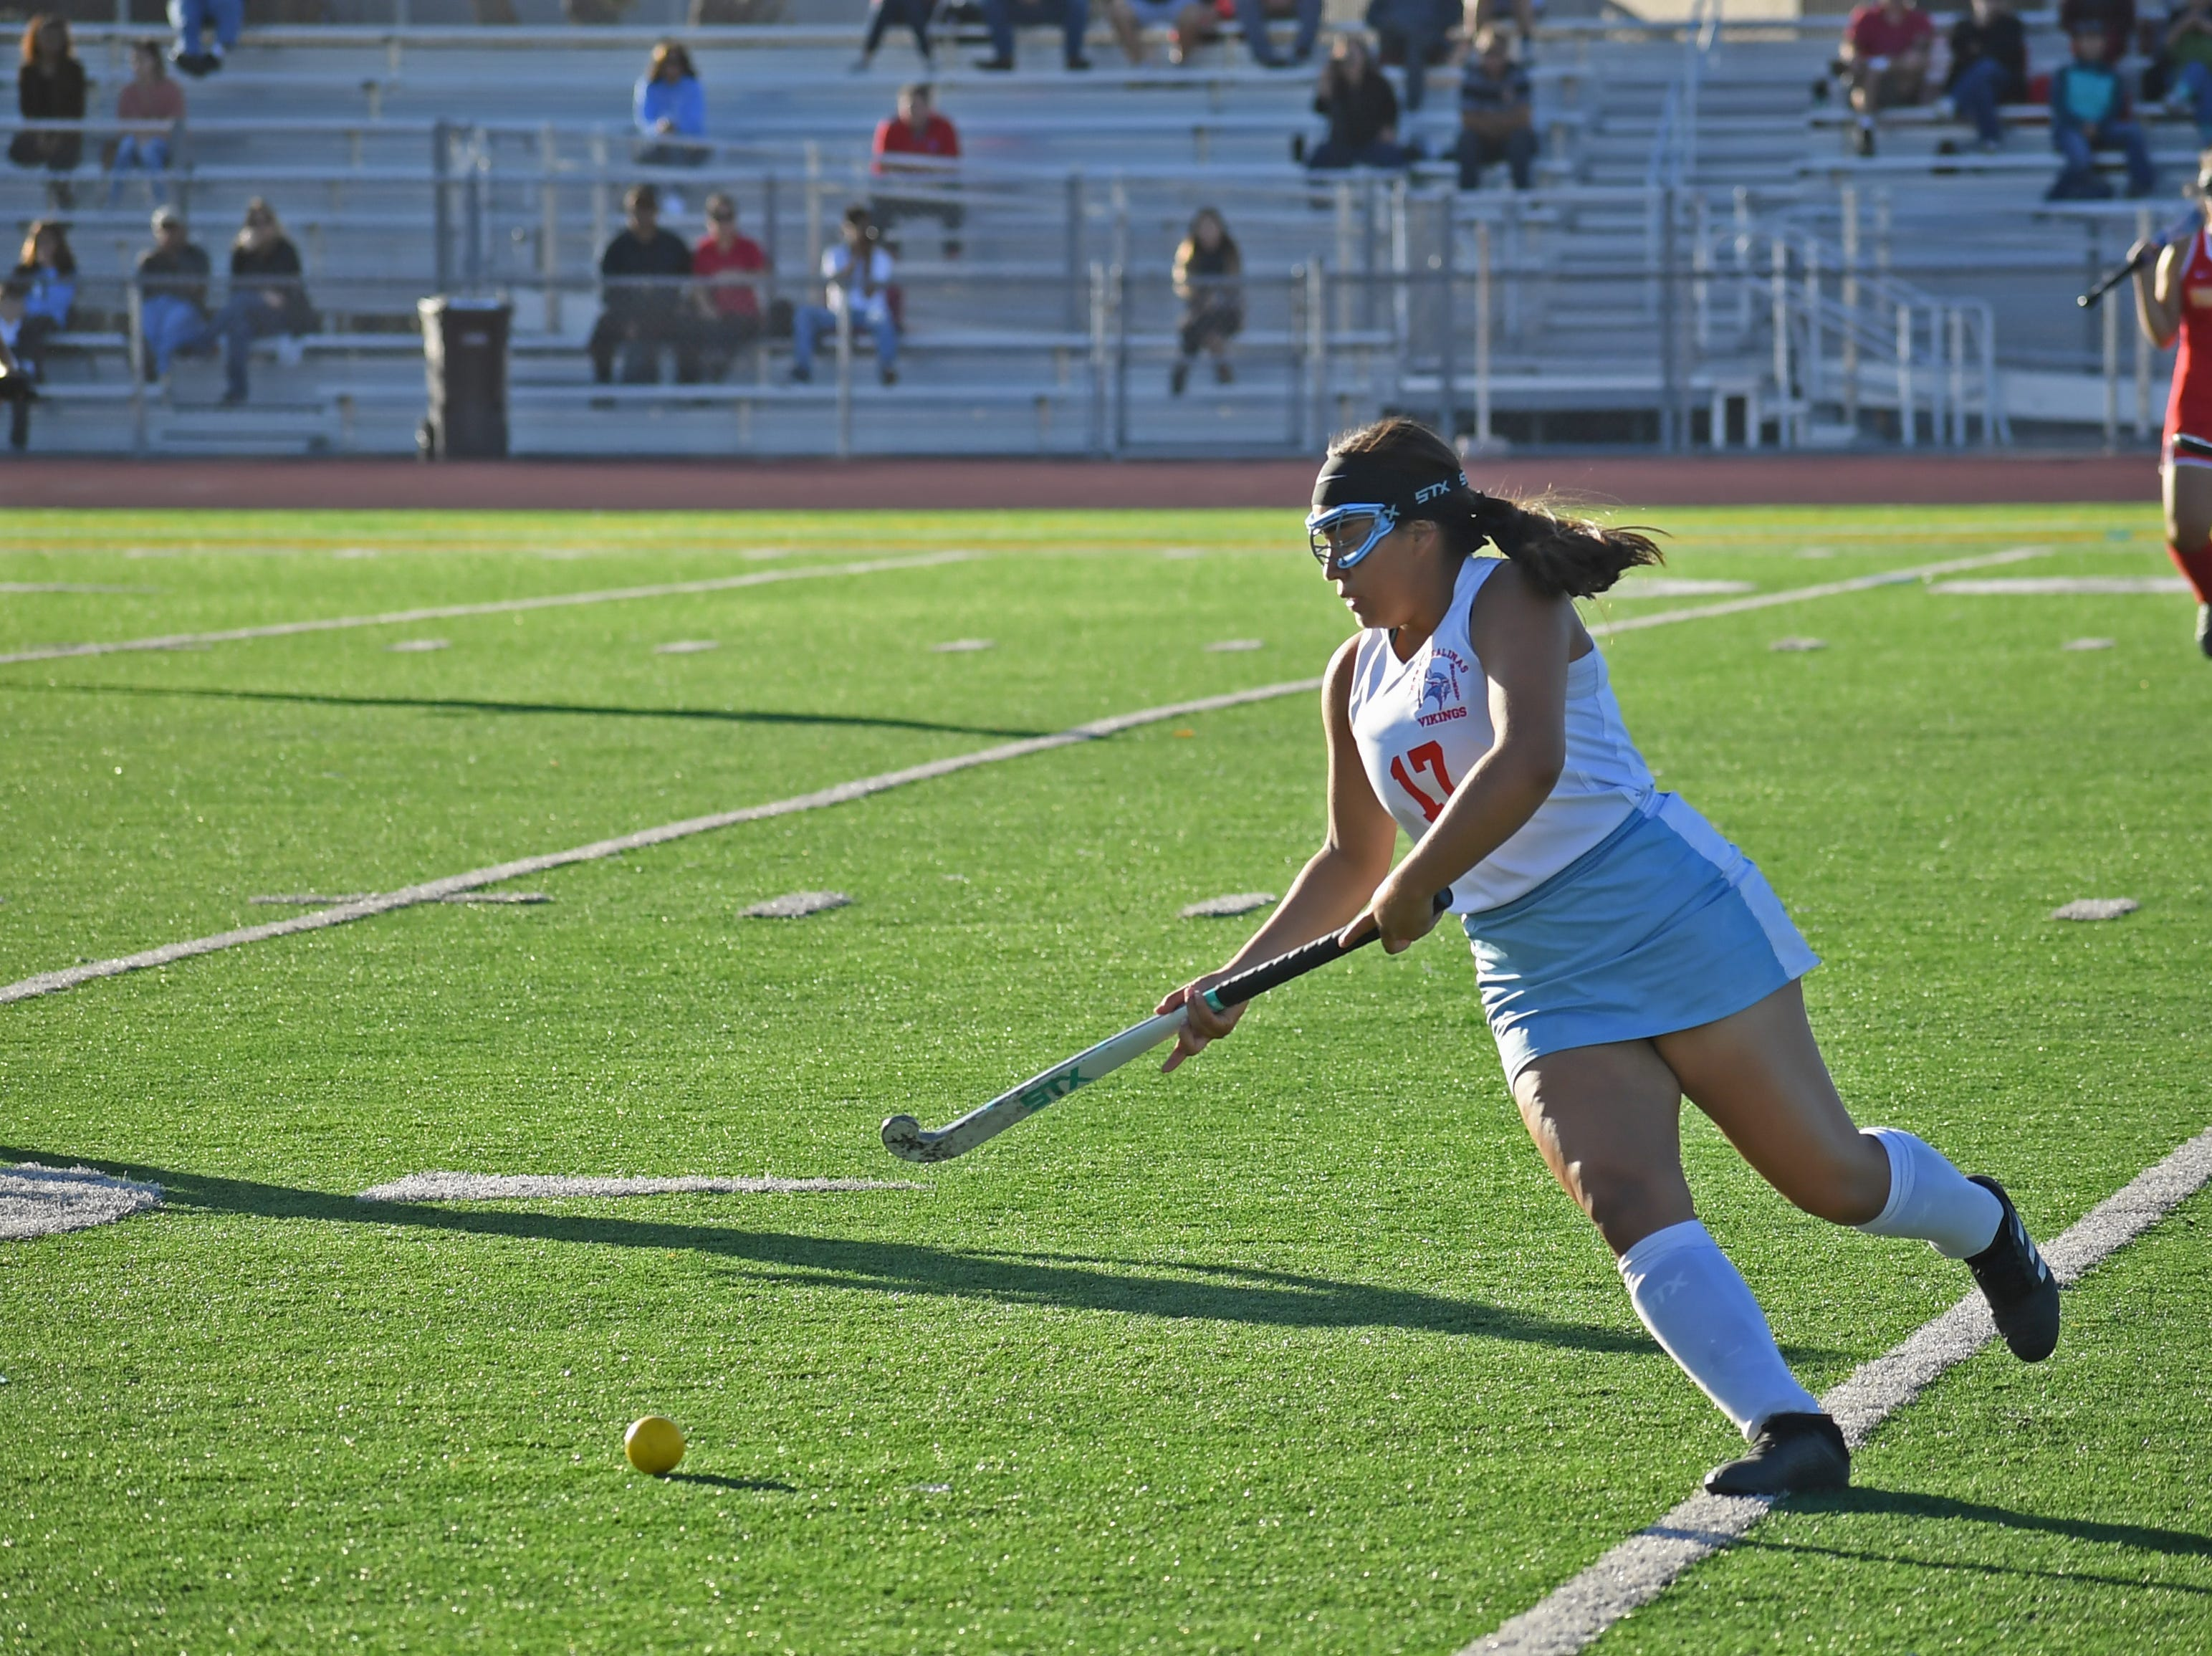 Midfielder Dahrely Alvarez (17) takes a pass from Emily Ruelas down the left side of the field.